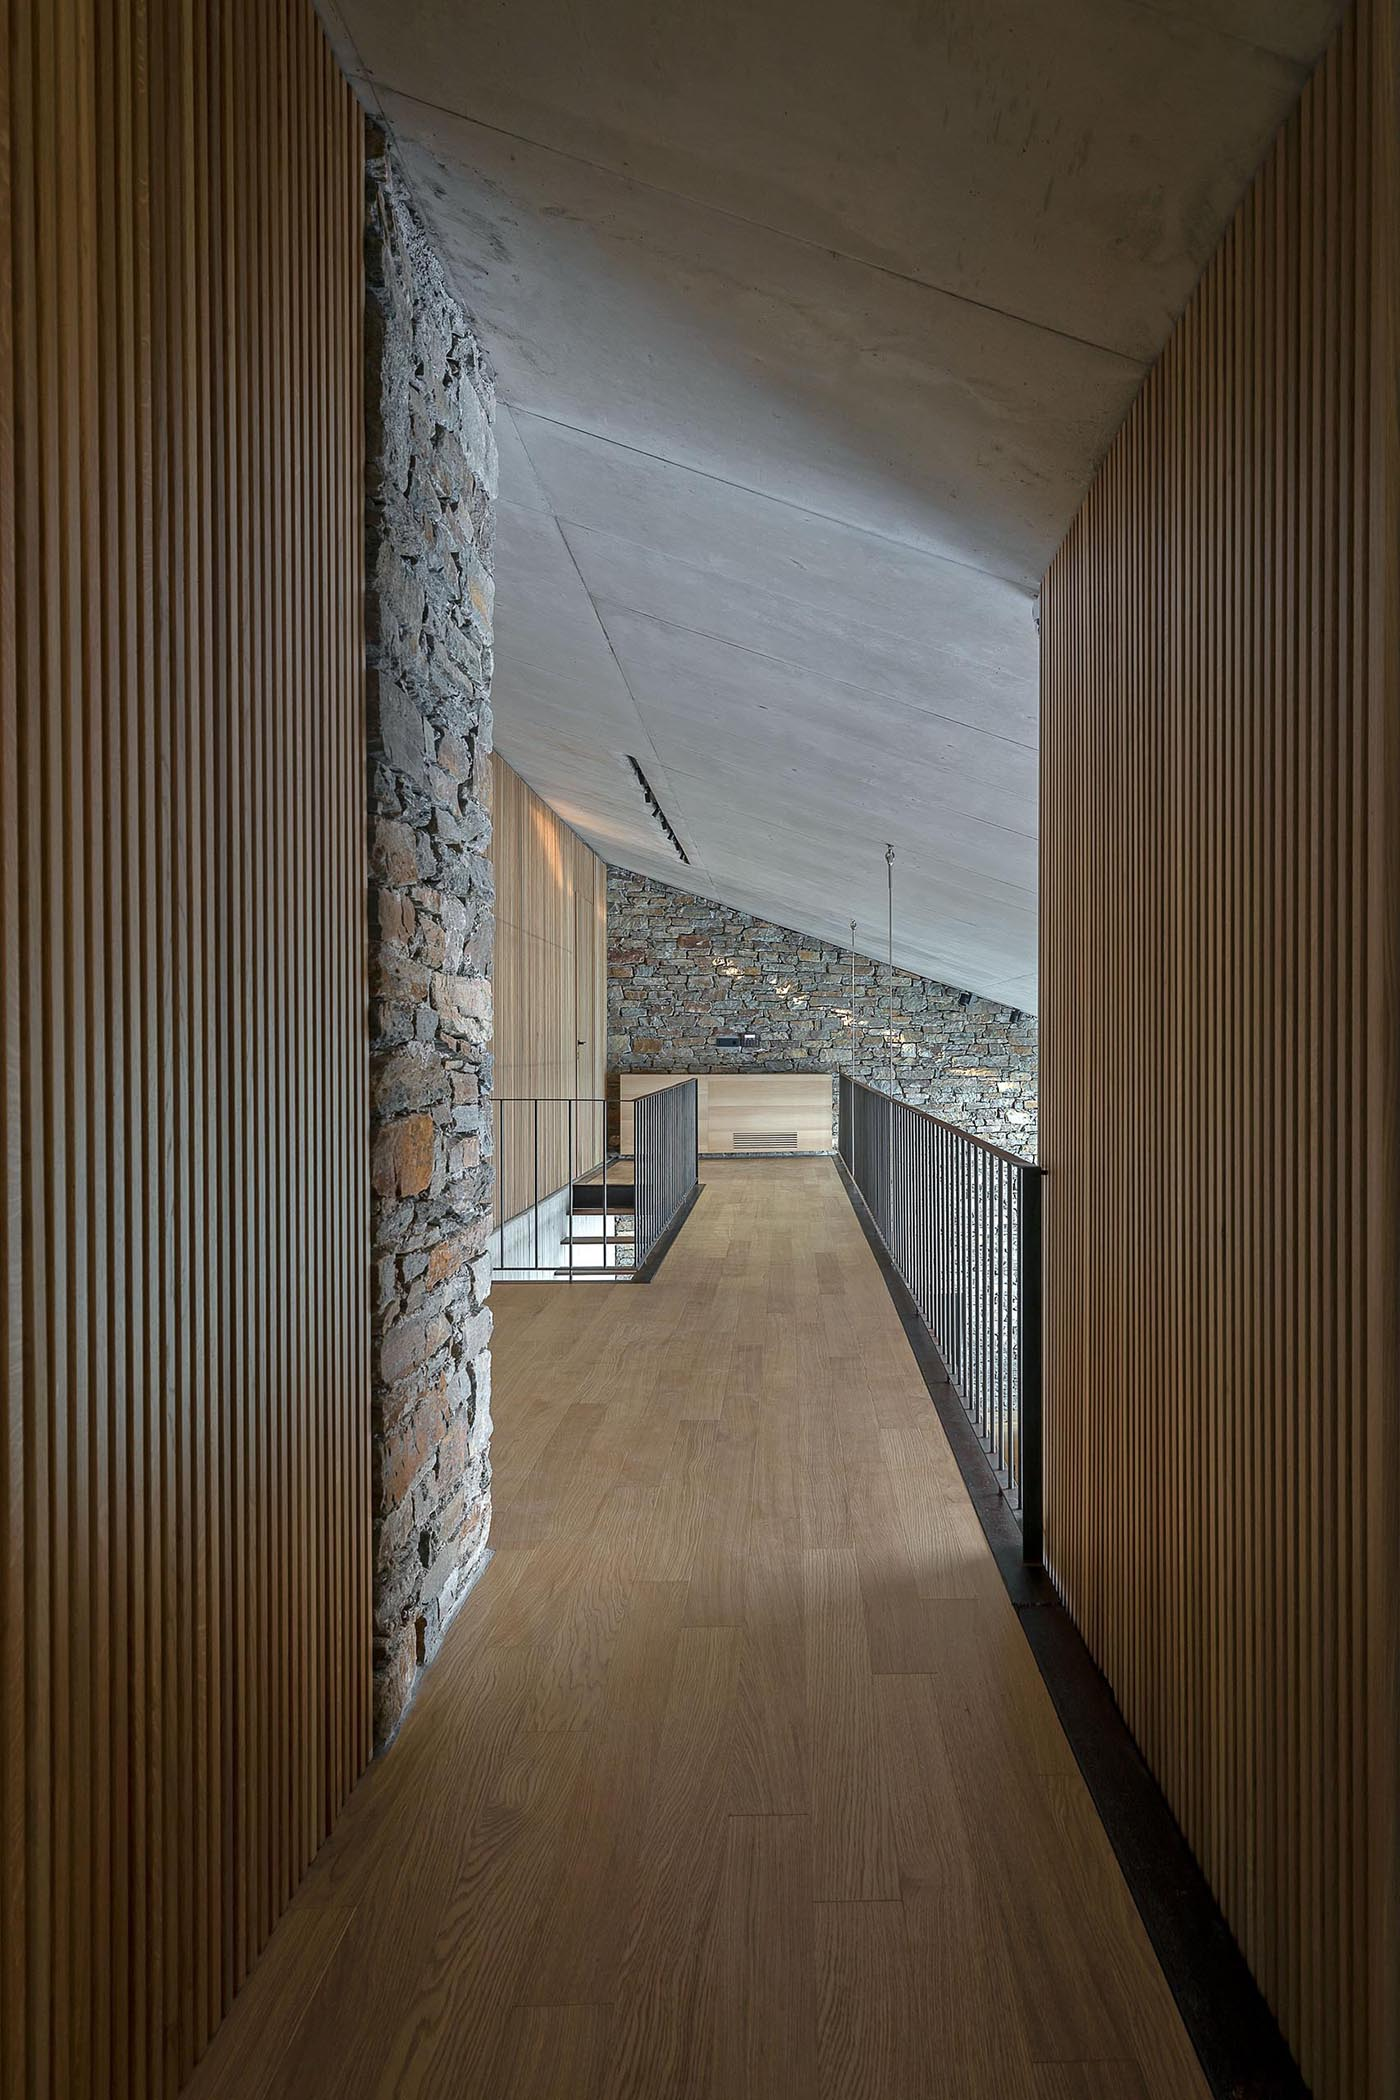 A modern home with stone walls and an interior bridge.